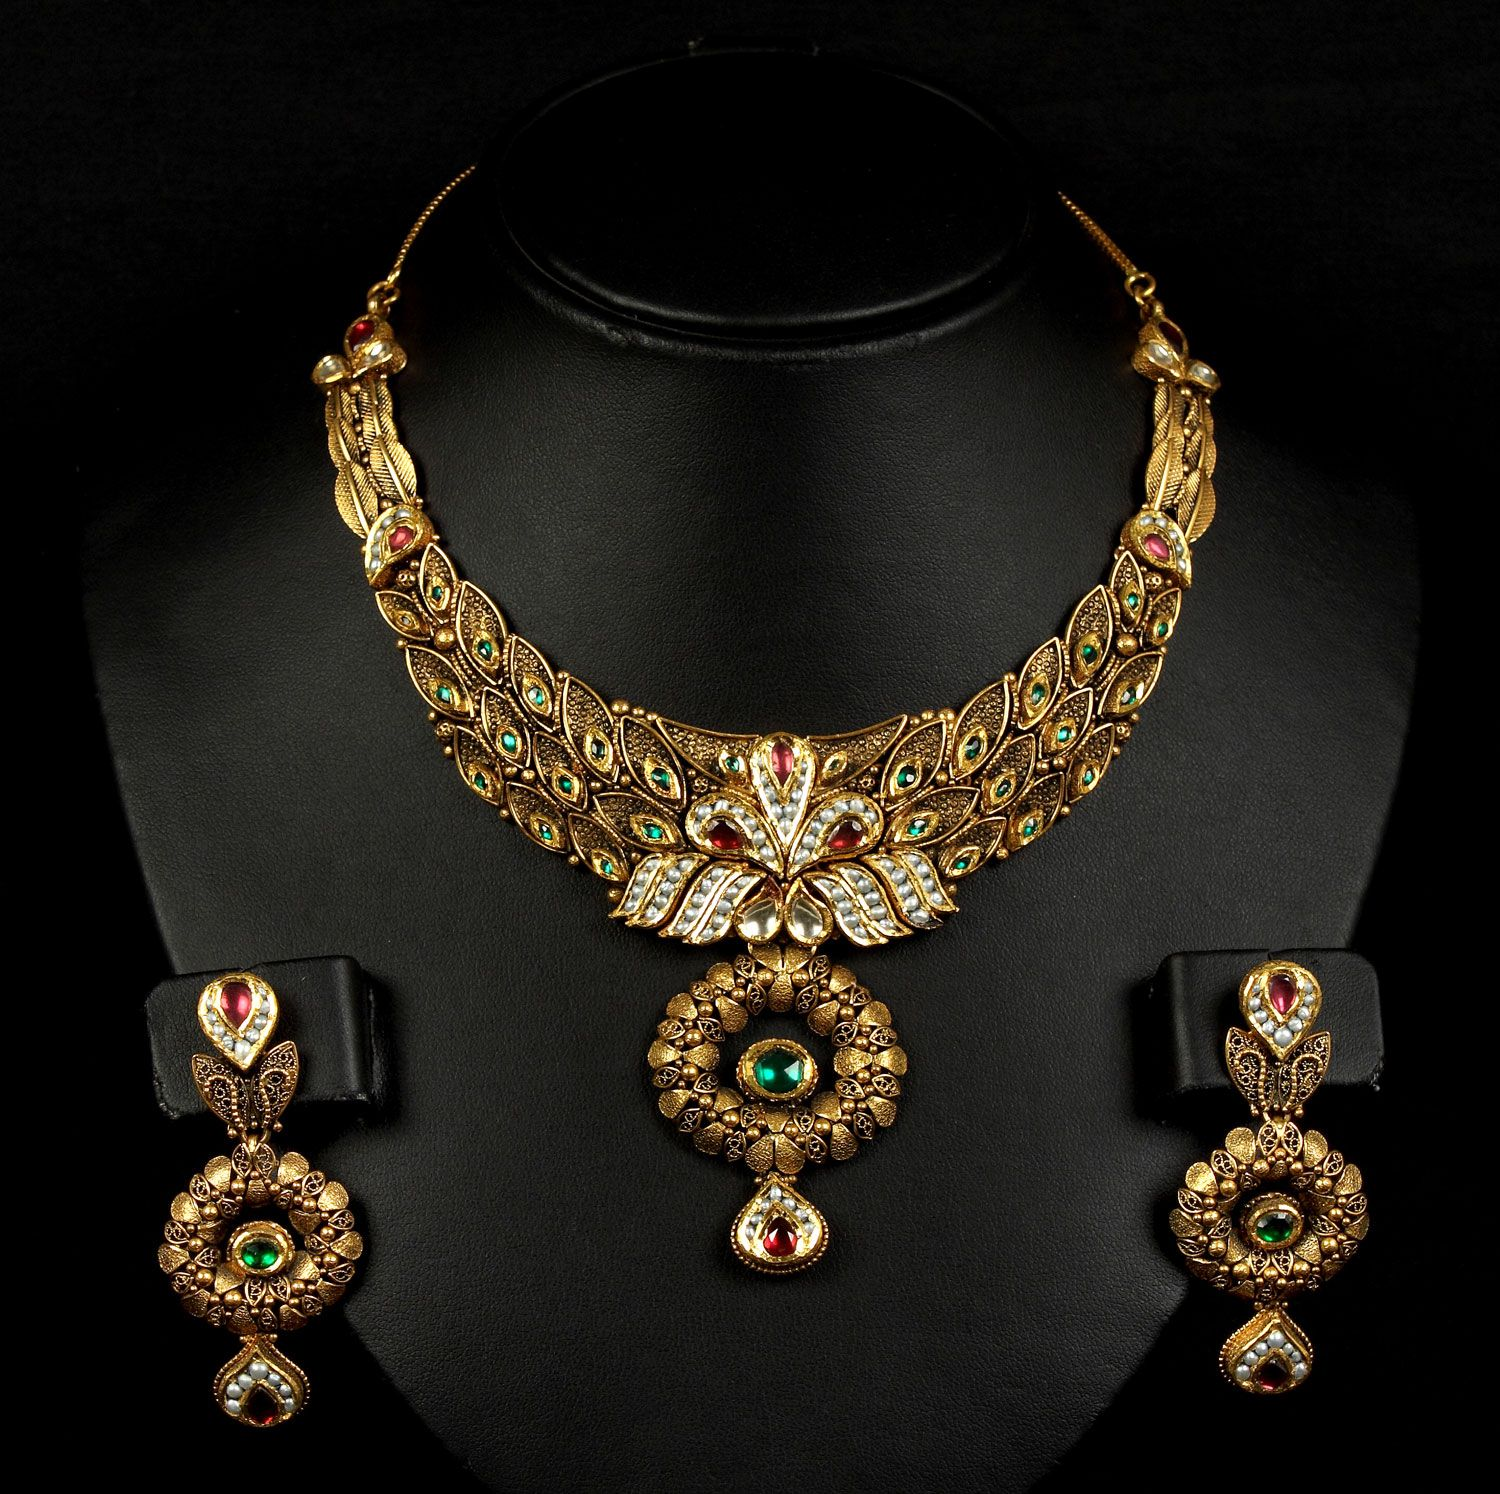 Gold Designer Necklace Wallpapers & Pictures: Find Best